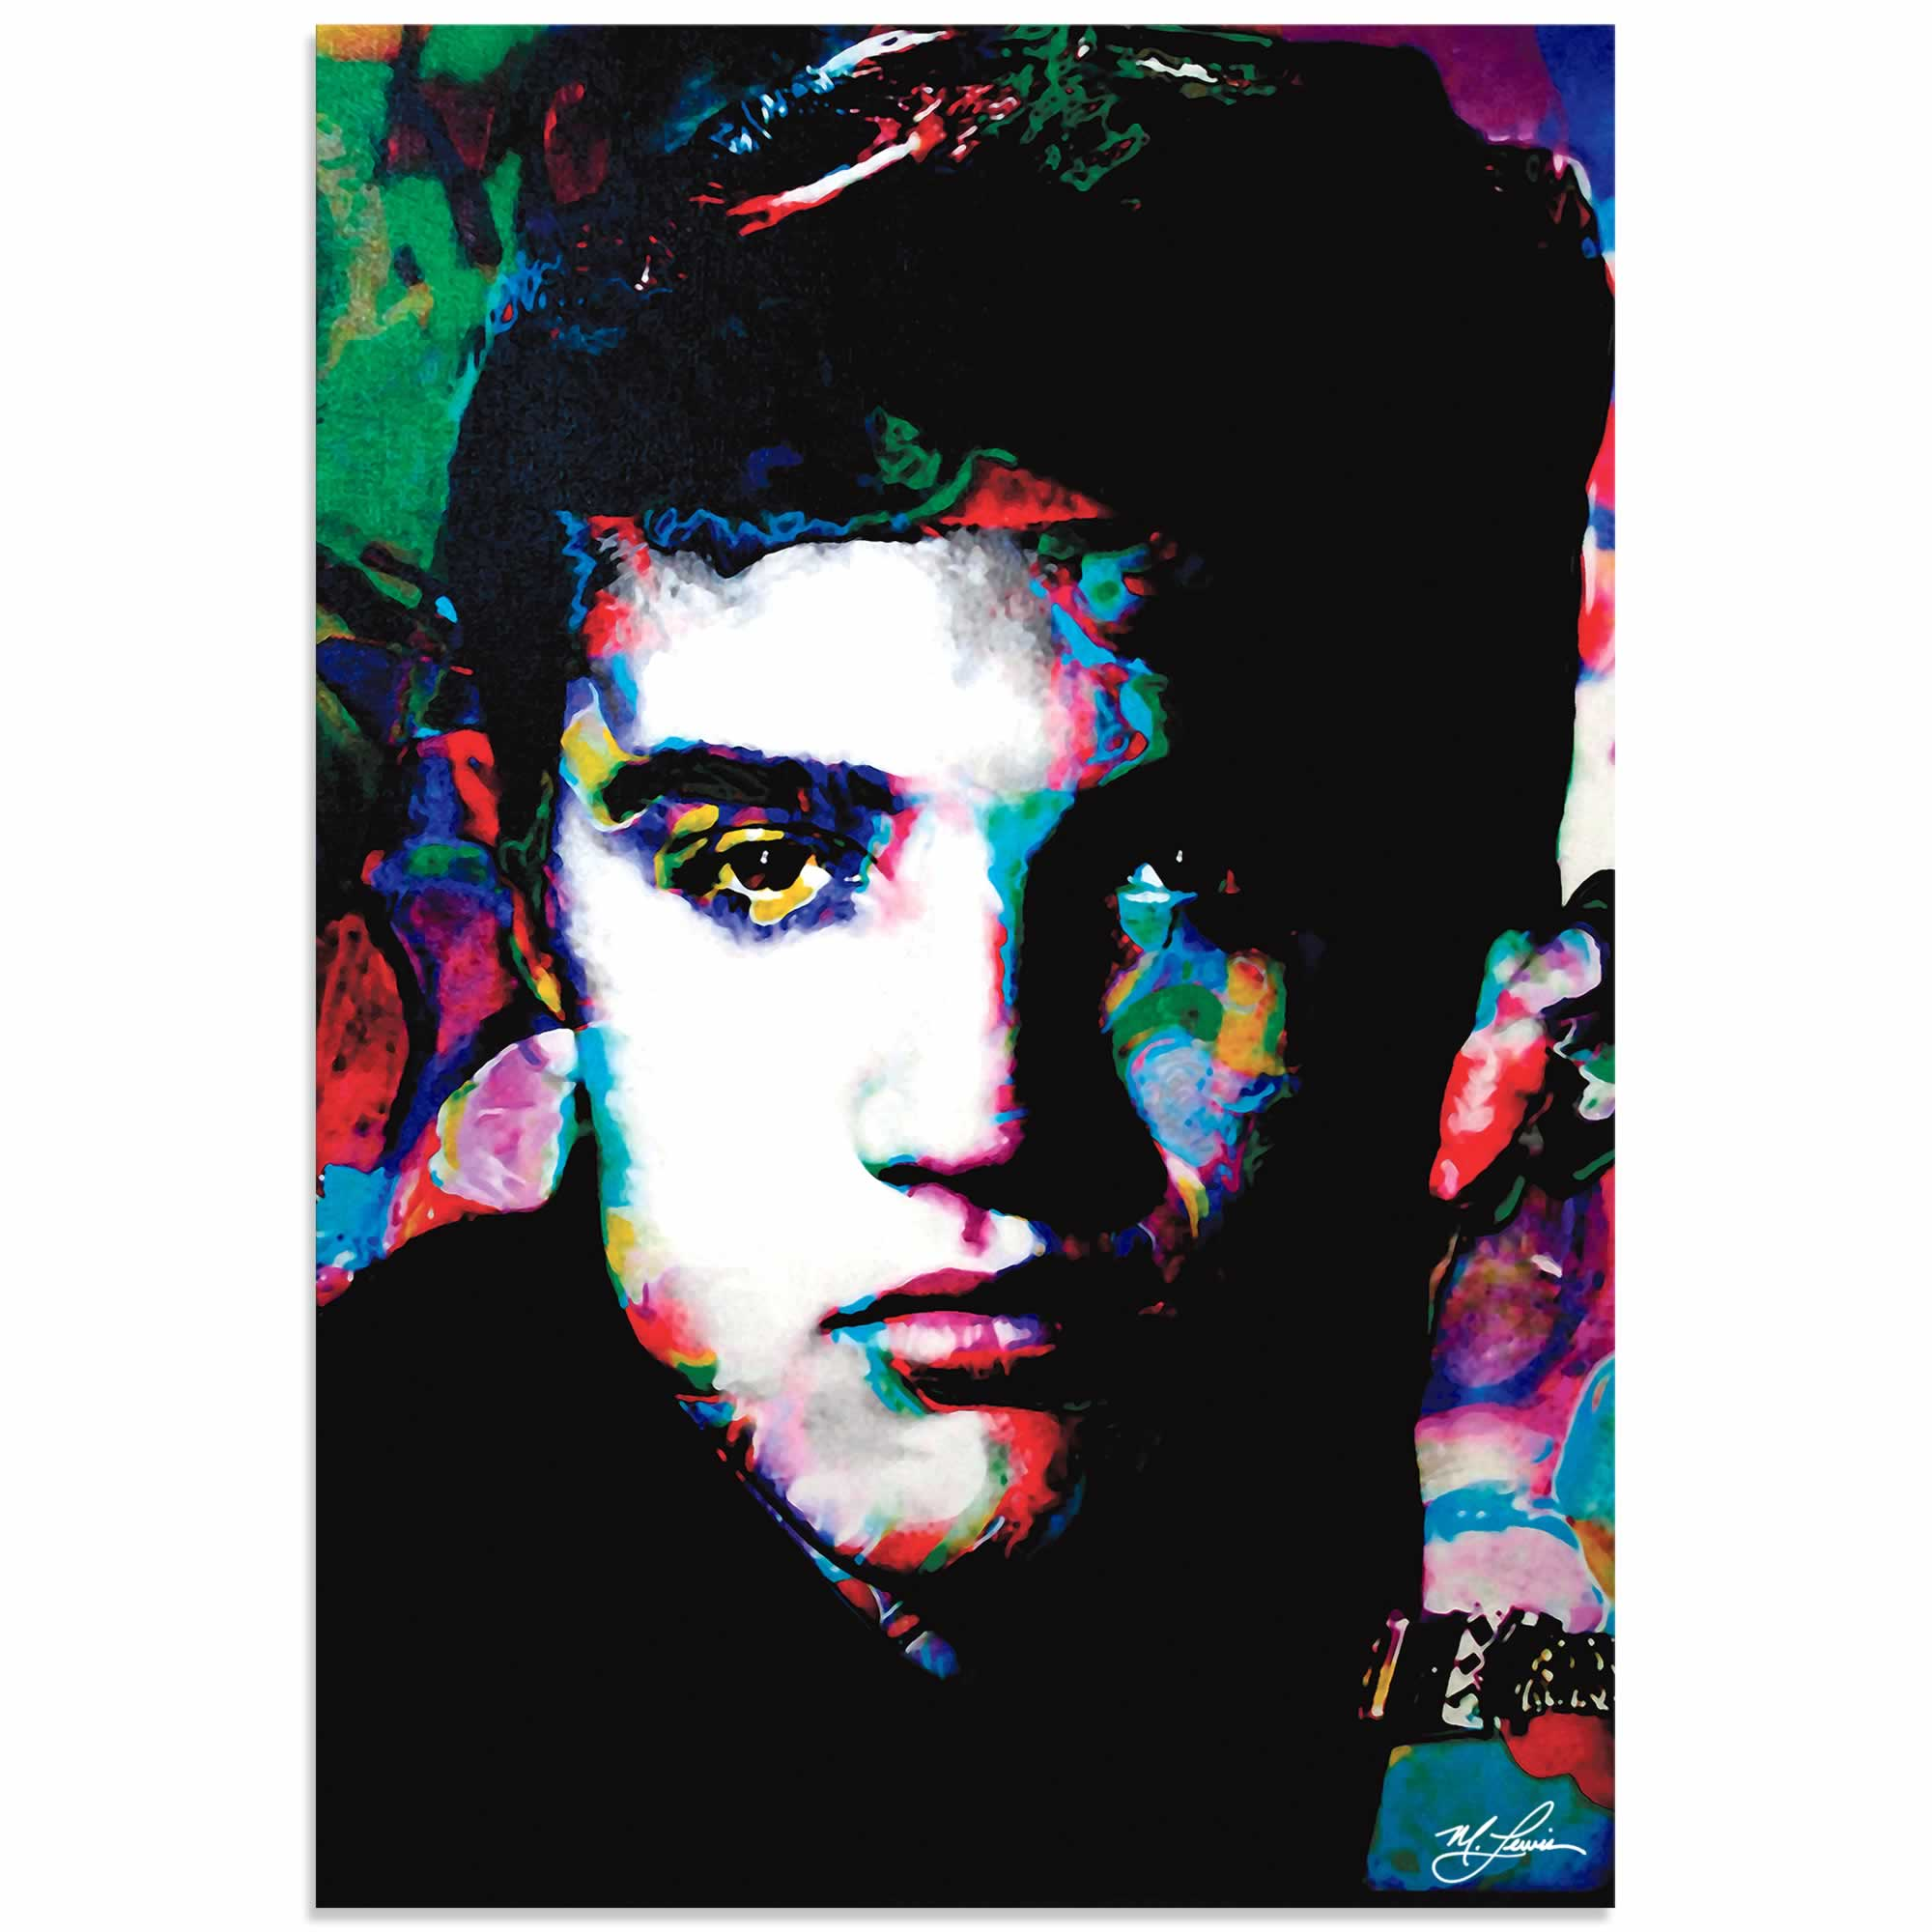 Elvis Presley Electric Ambition | Pop Art Painting by Mark Lewis, Signed & Numbered Limited Edition